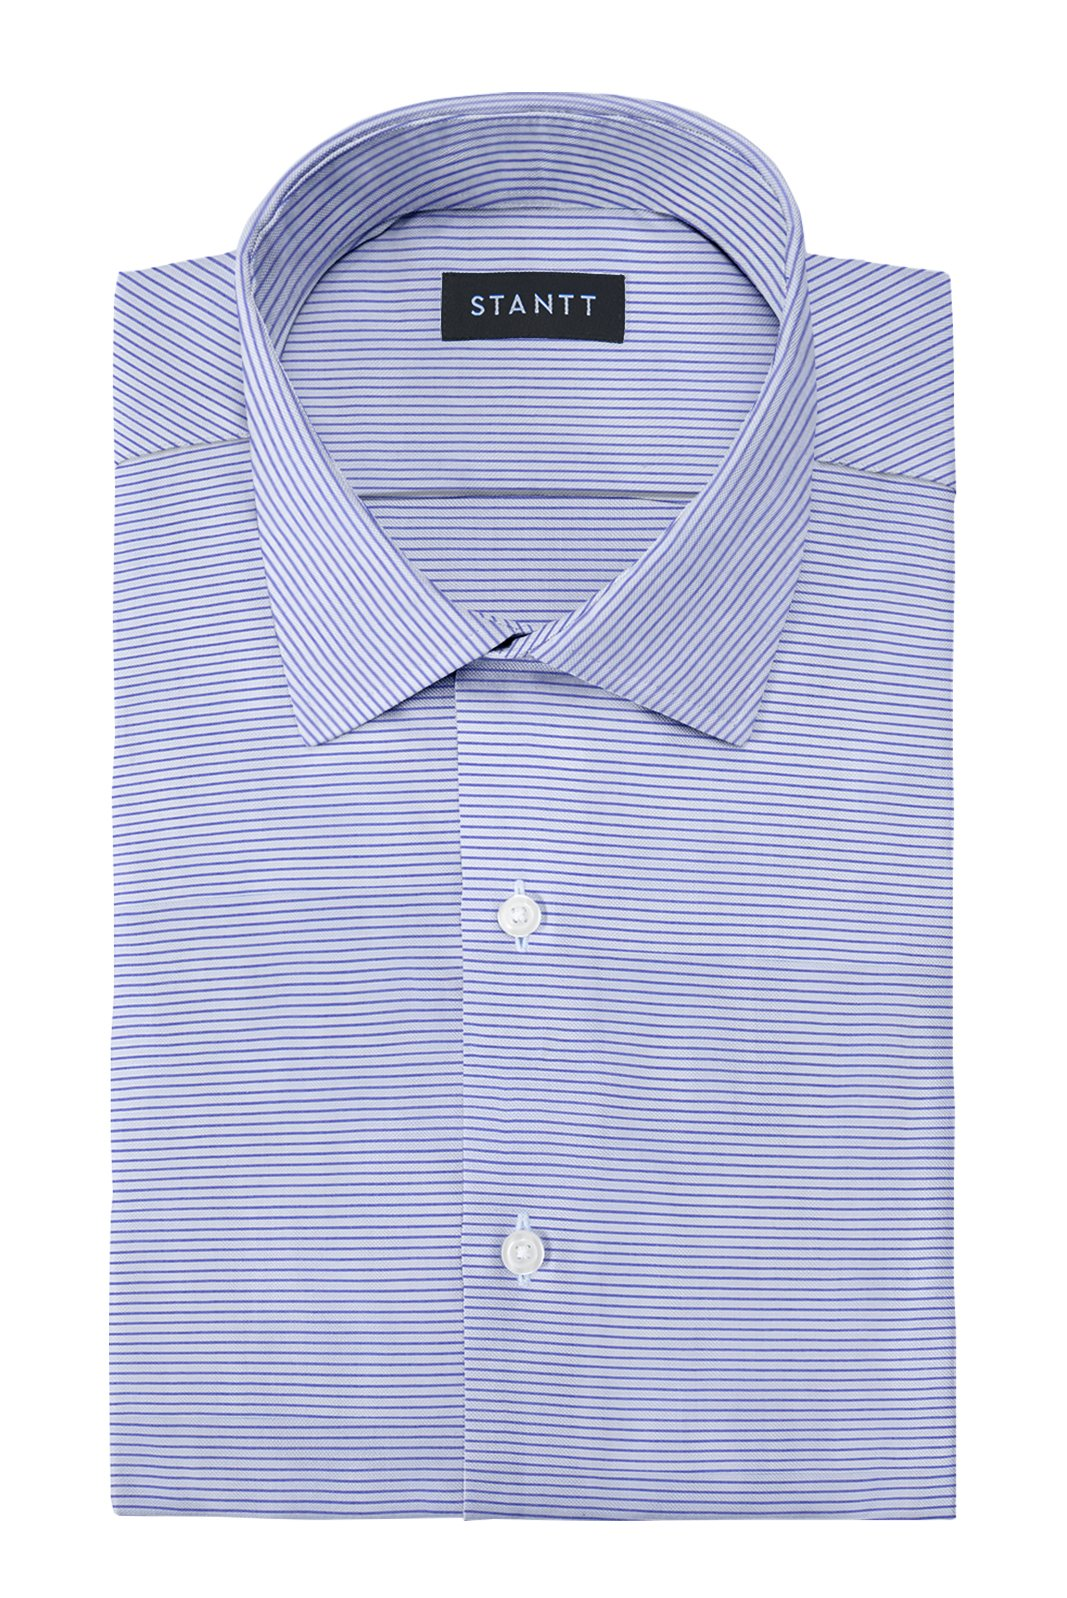 Cool Blue Horizontal Linen Stripe: Modified-Spread Collar, French Cuff